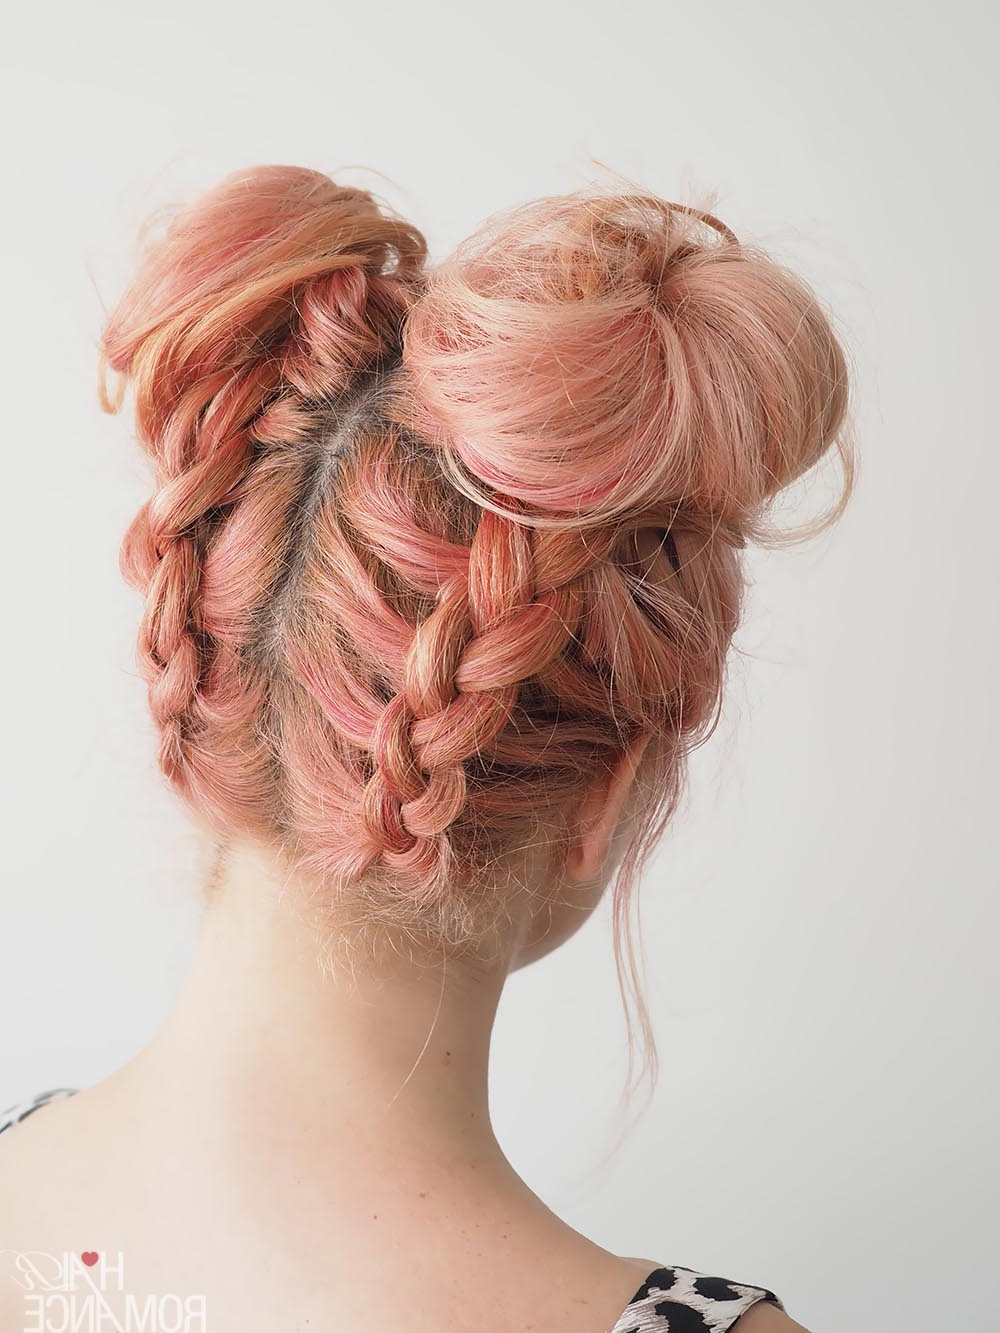 Diy Braided Space Buns Tutorial – Hair Romance In Most Popular Braided Space Buns Updo Hairstyles (View 5 of 20)